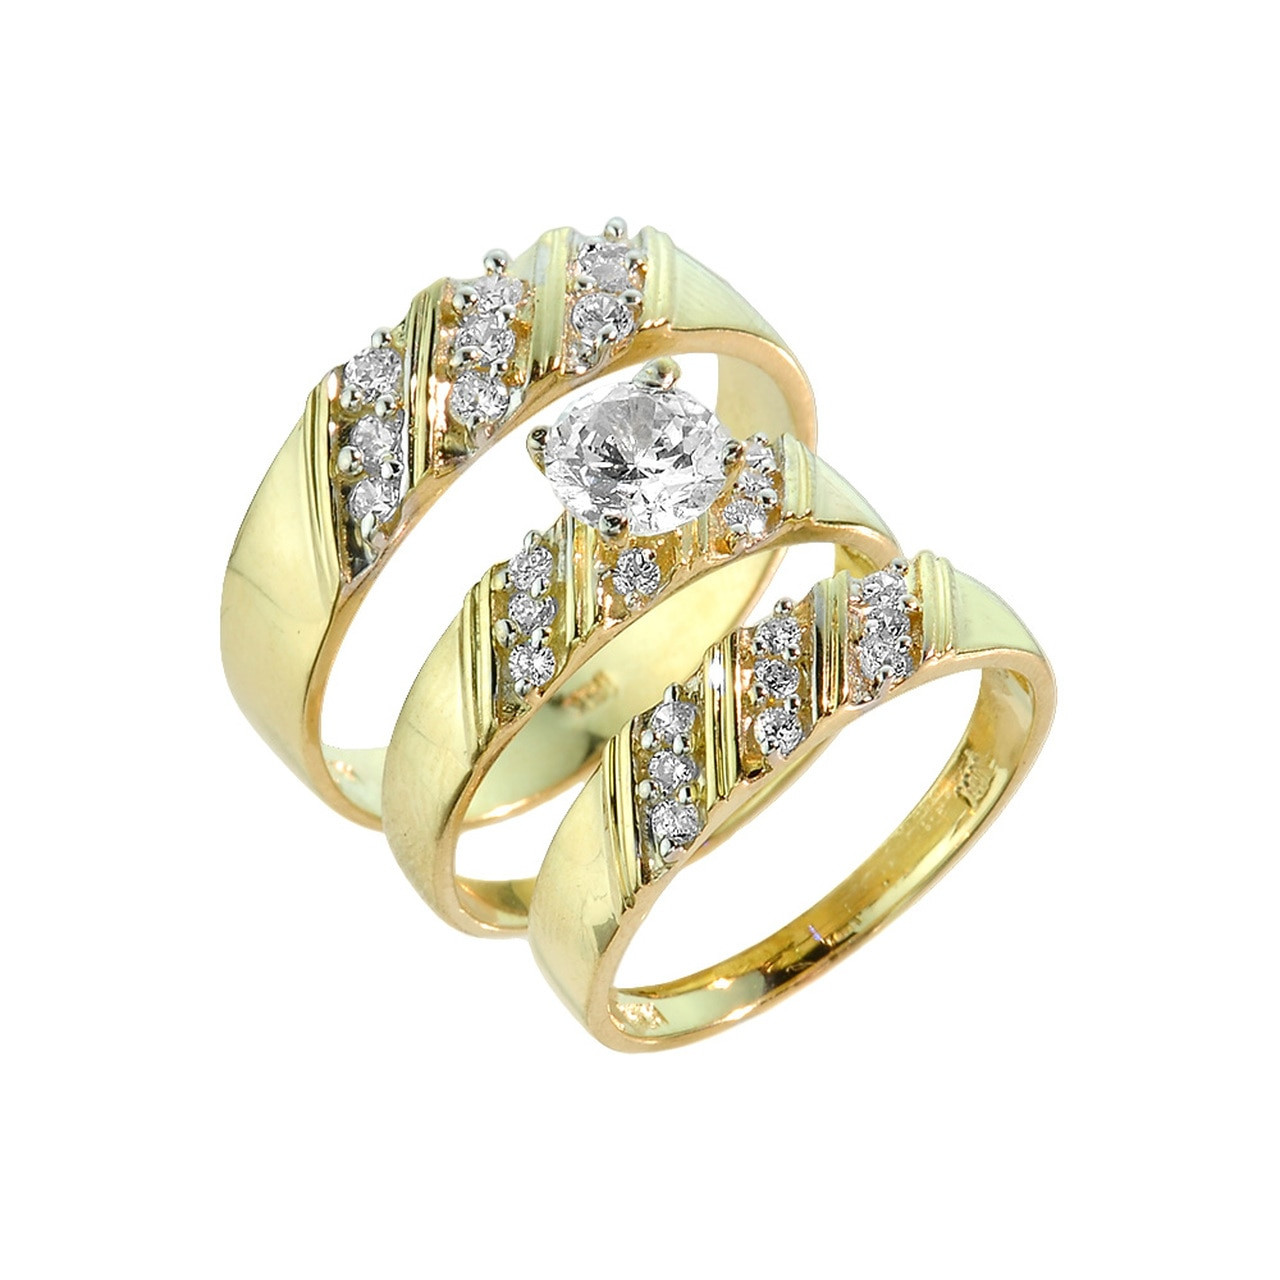 3 Piece Wedding Ring Set  Gold CZ 3 Piece Wedding Ring Set